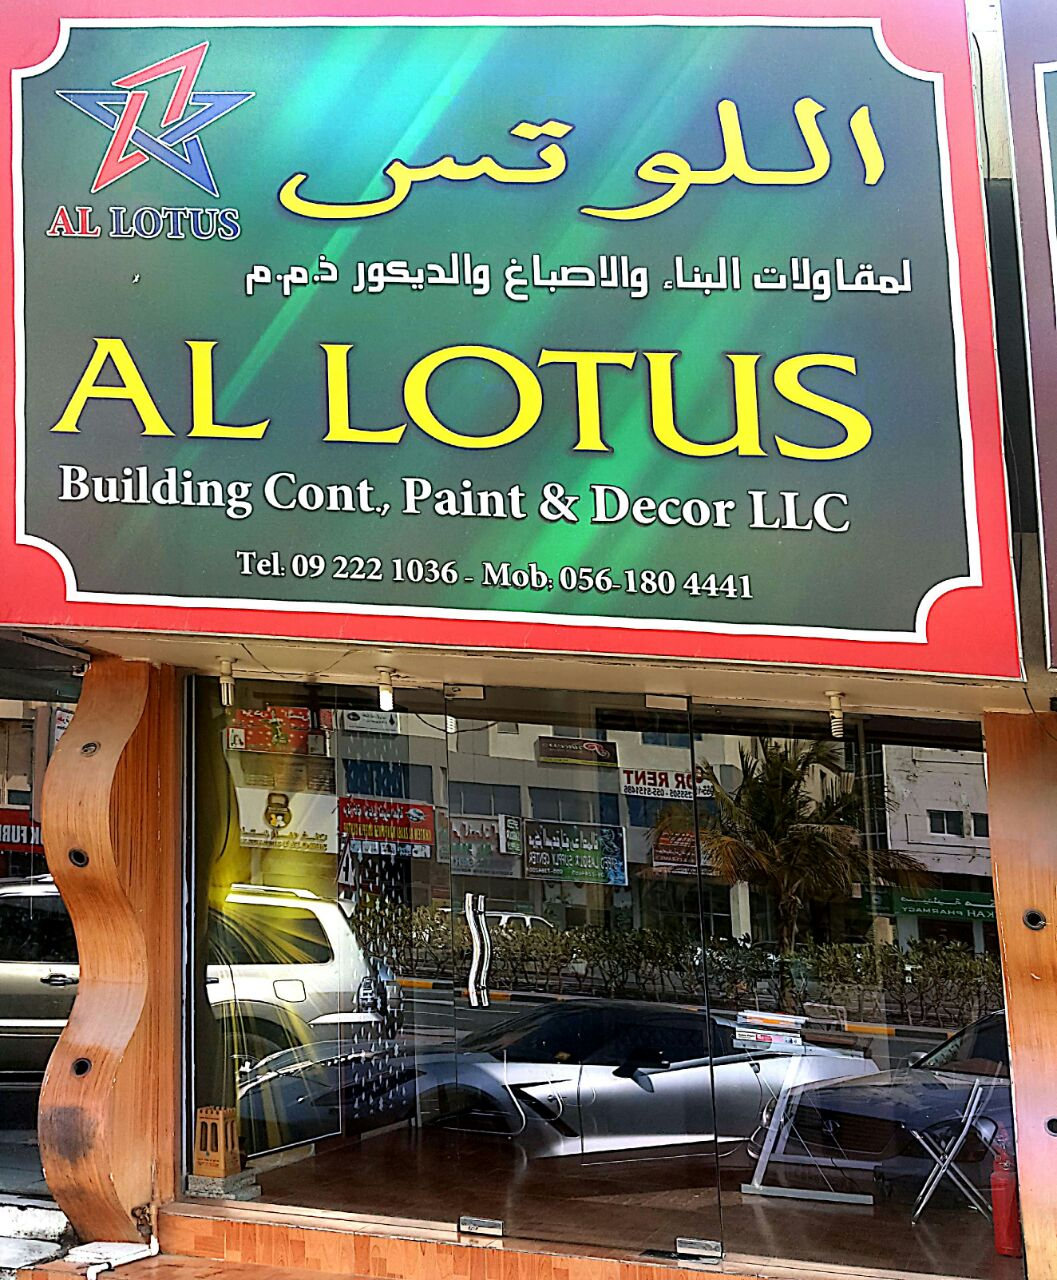 Al Lotus building Contracting & Paint Decor